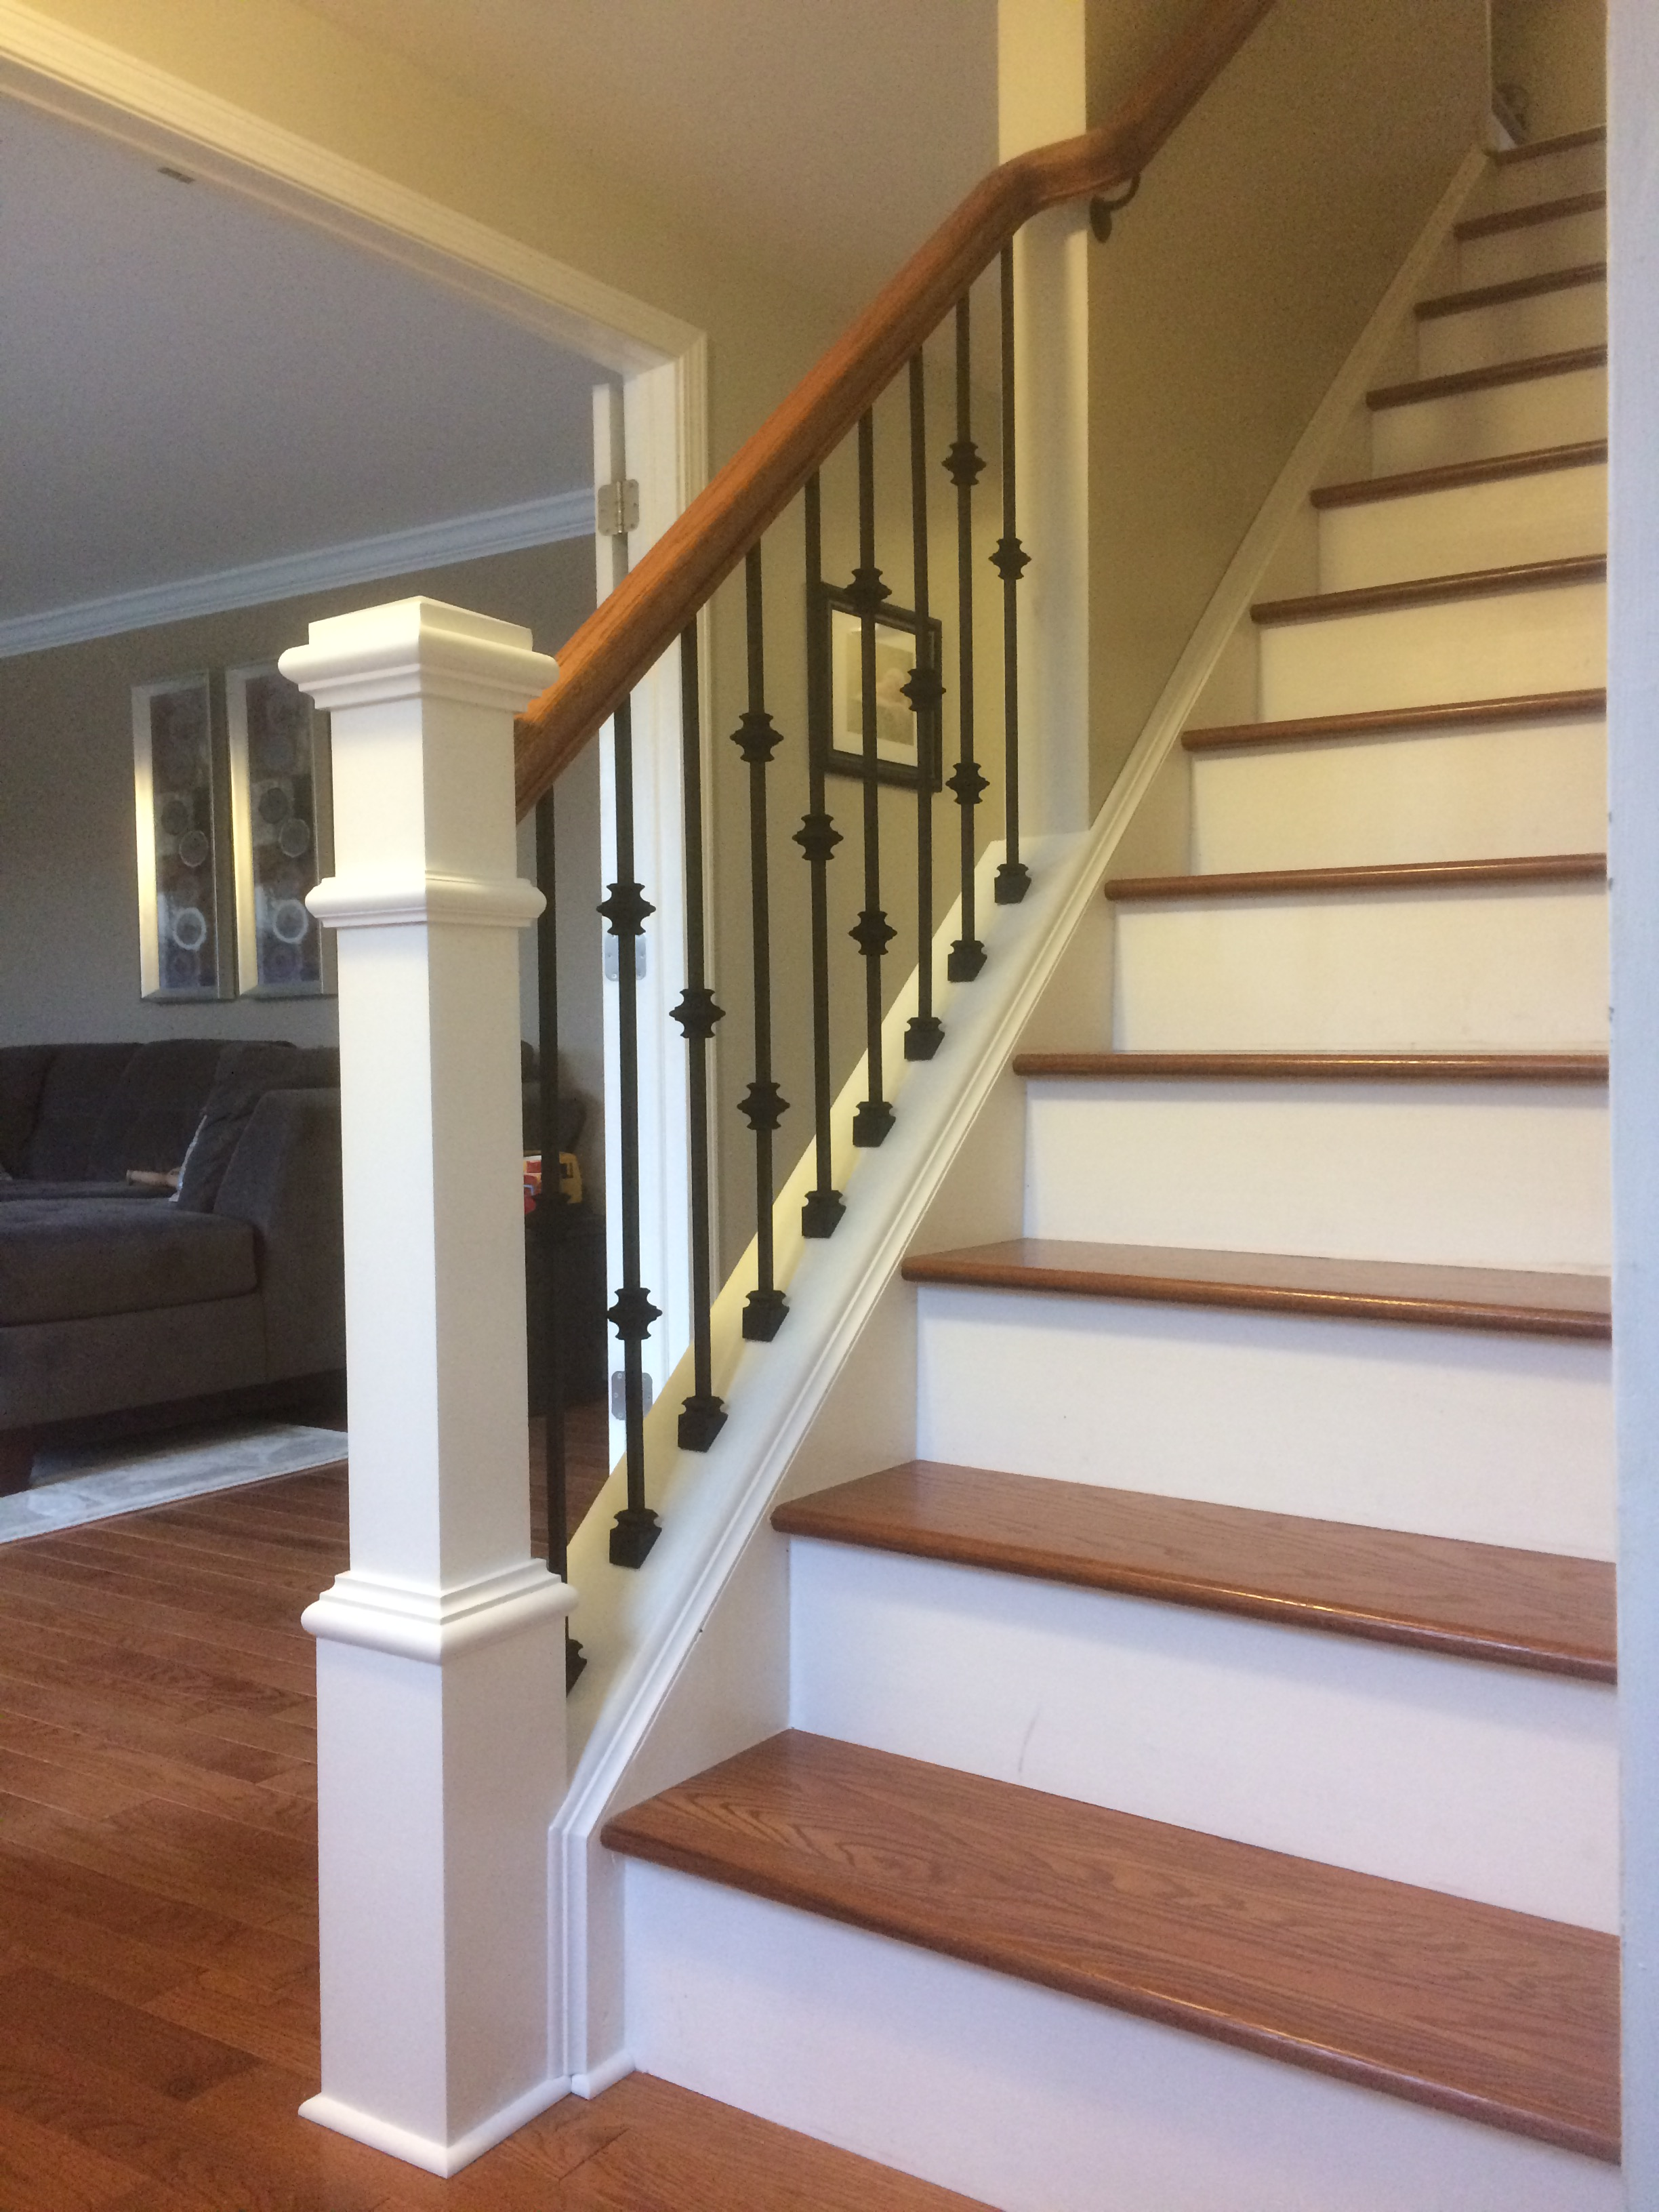 Wood railing with wrought iron balusters - Lux Design and ...